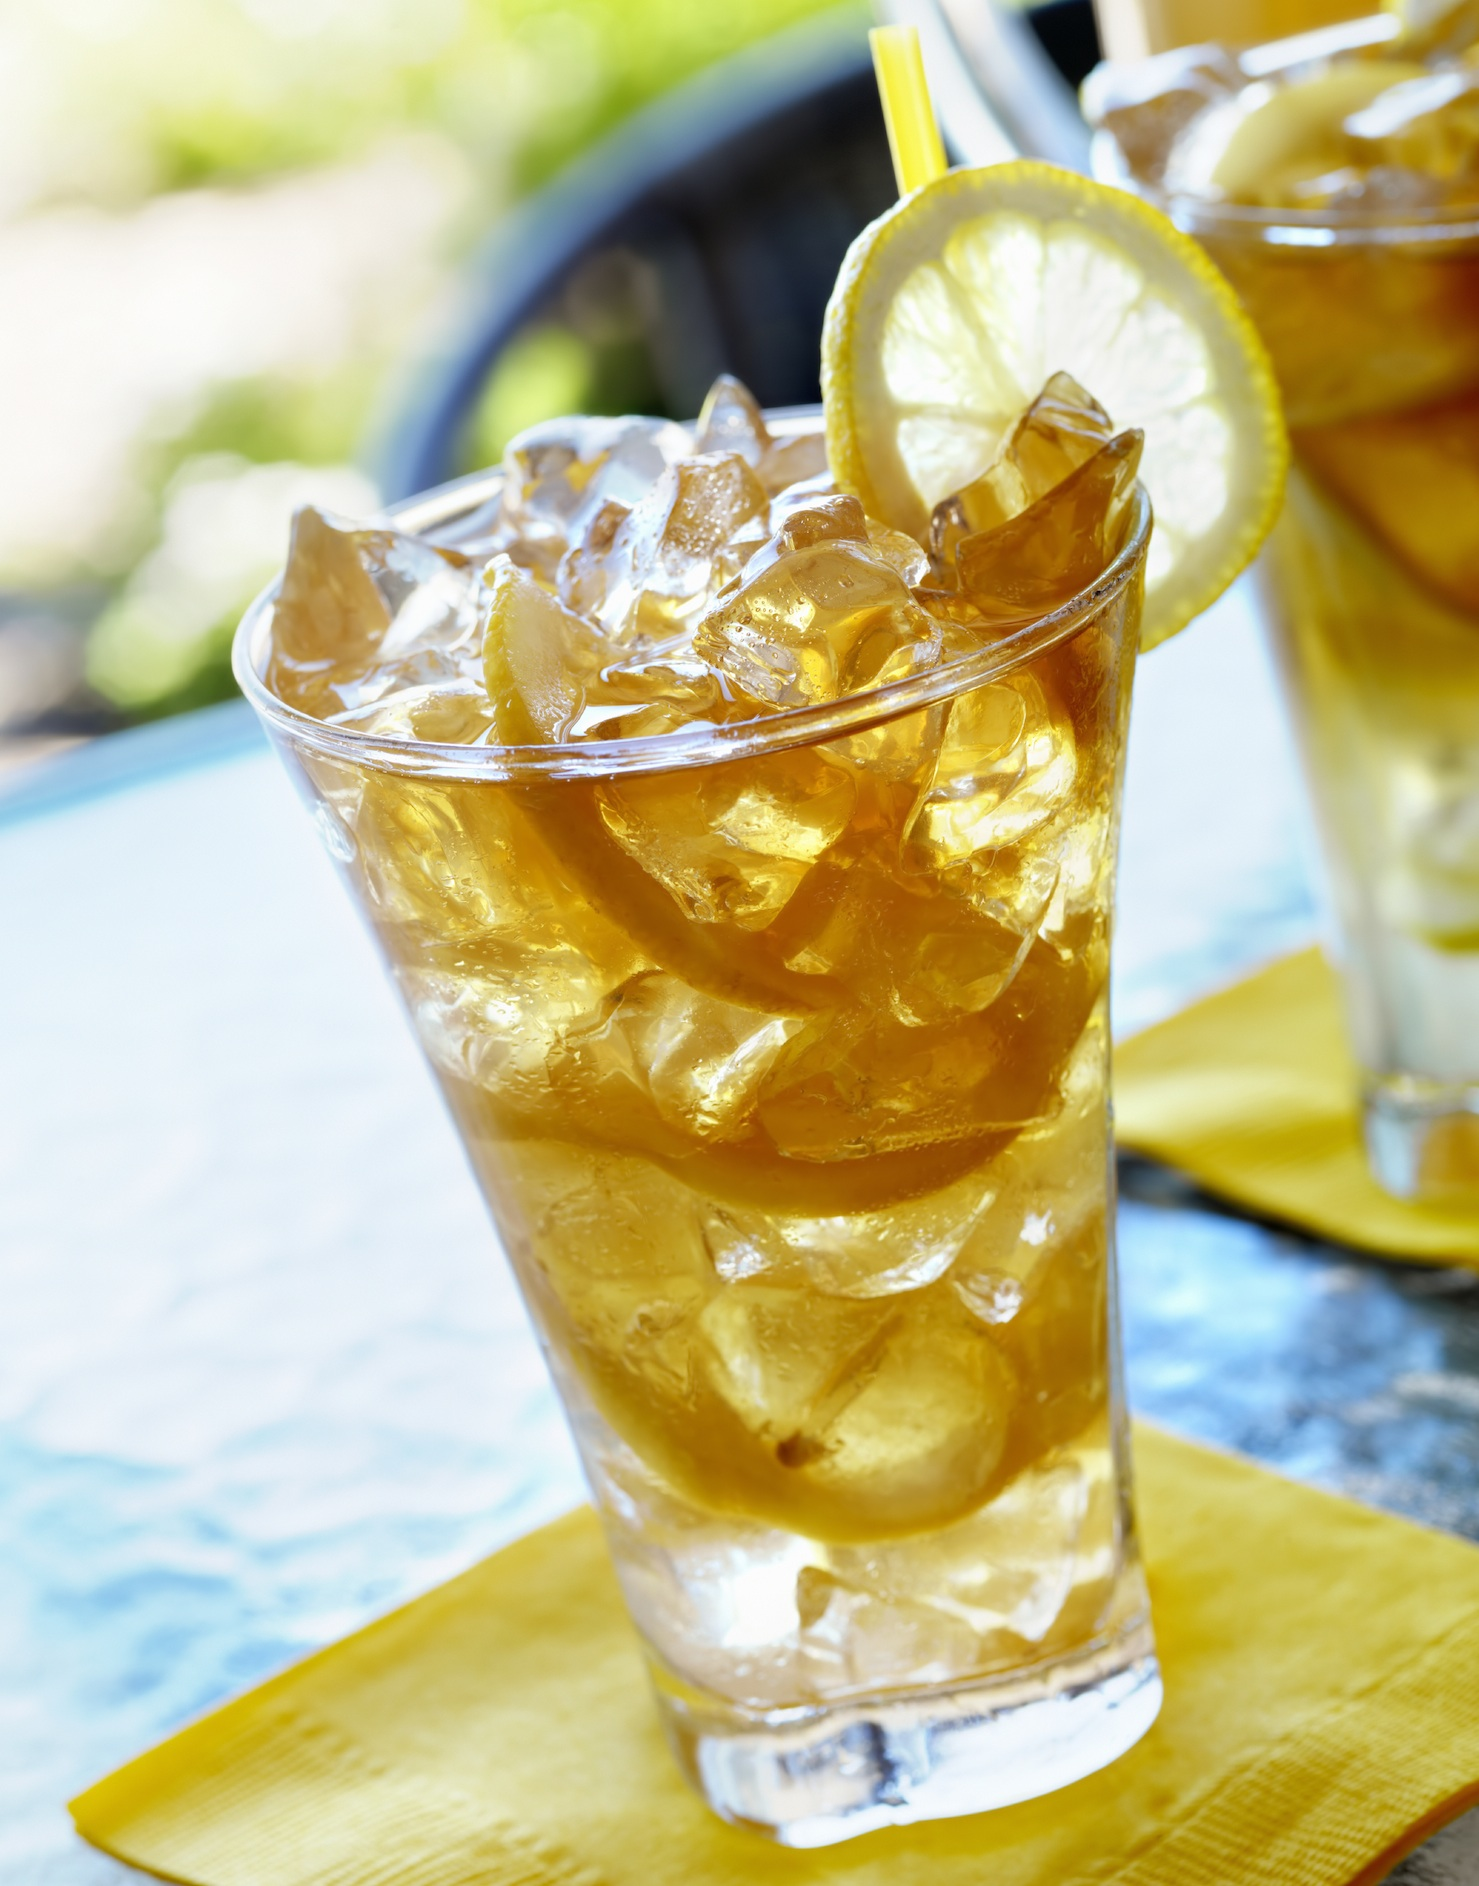 Top 10 long island iced tea recipes recipeporn for Iced tea cocktail recipes